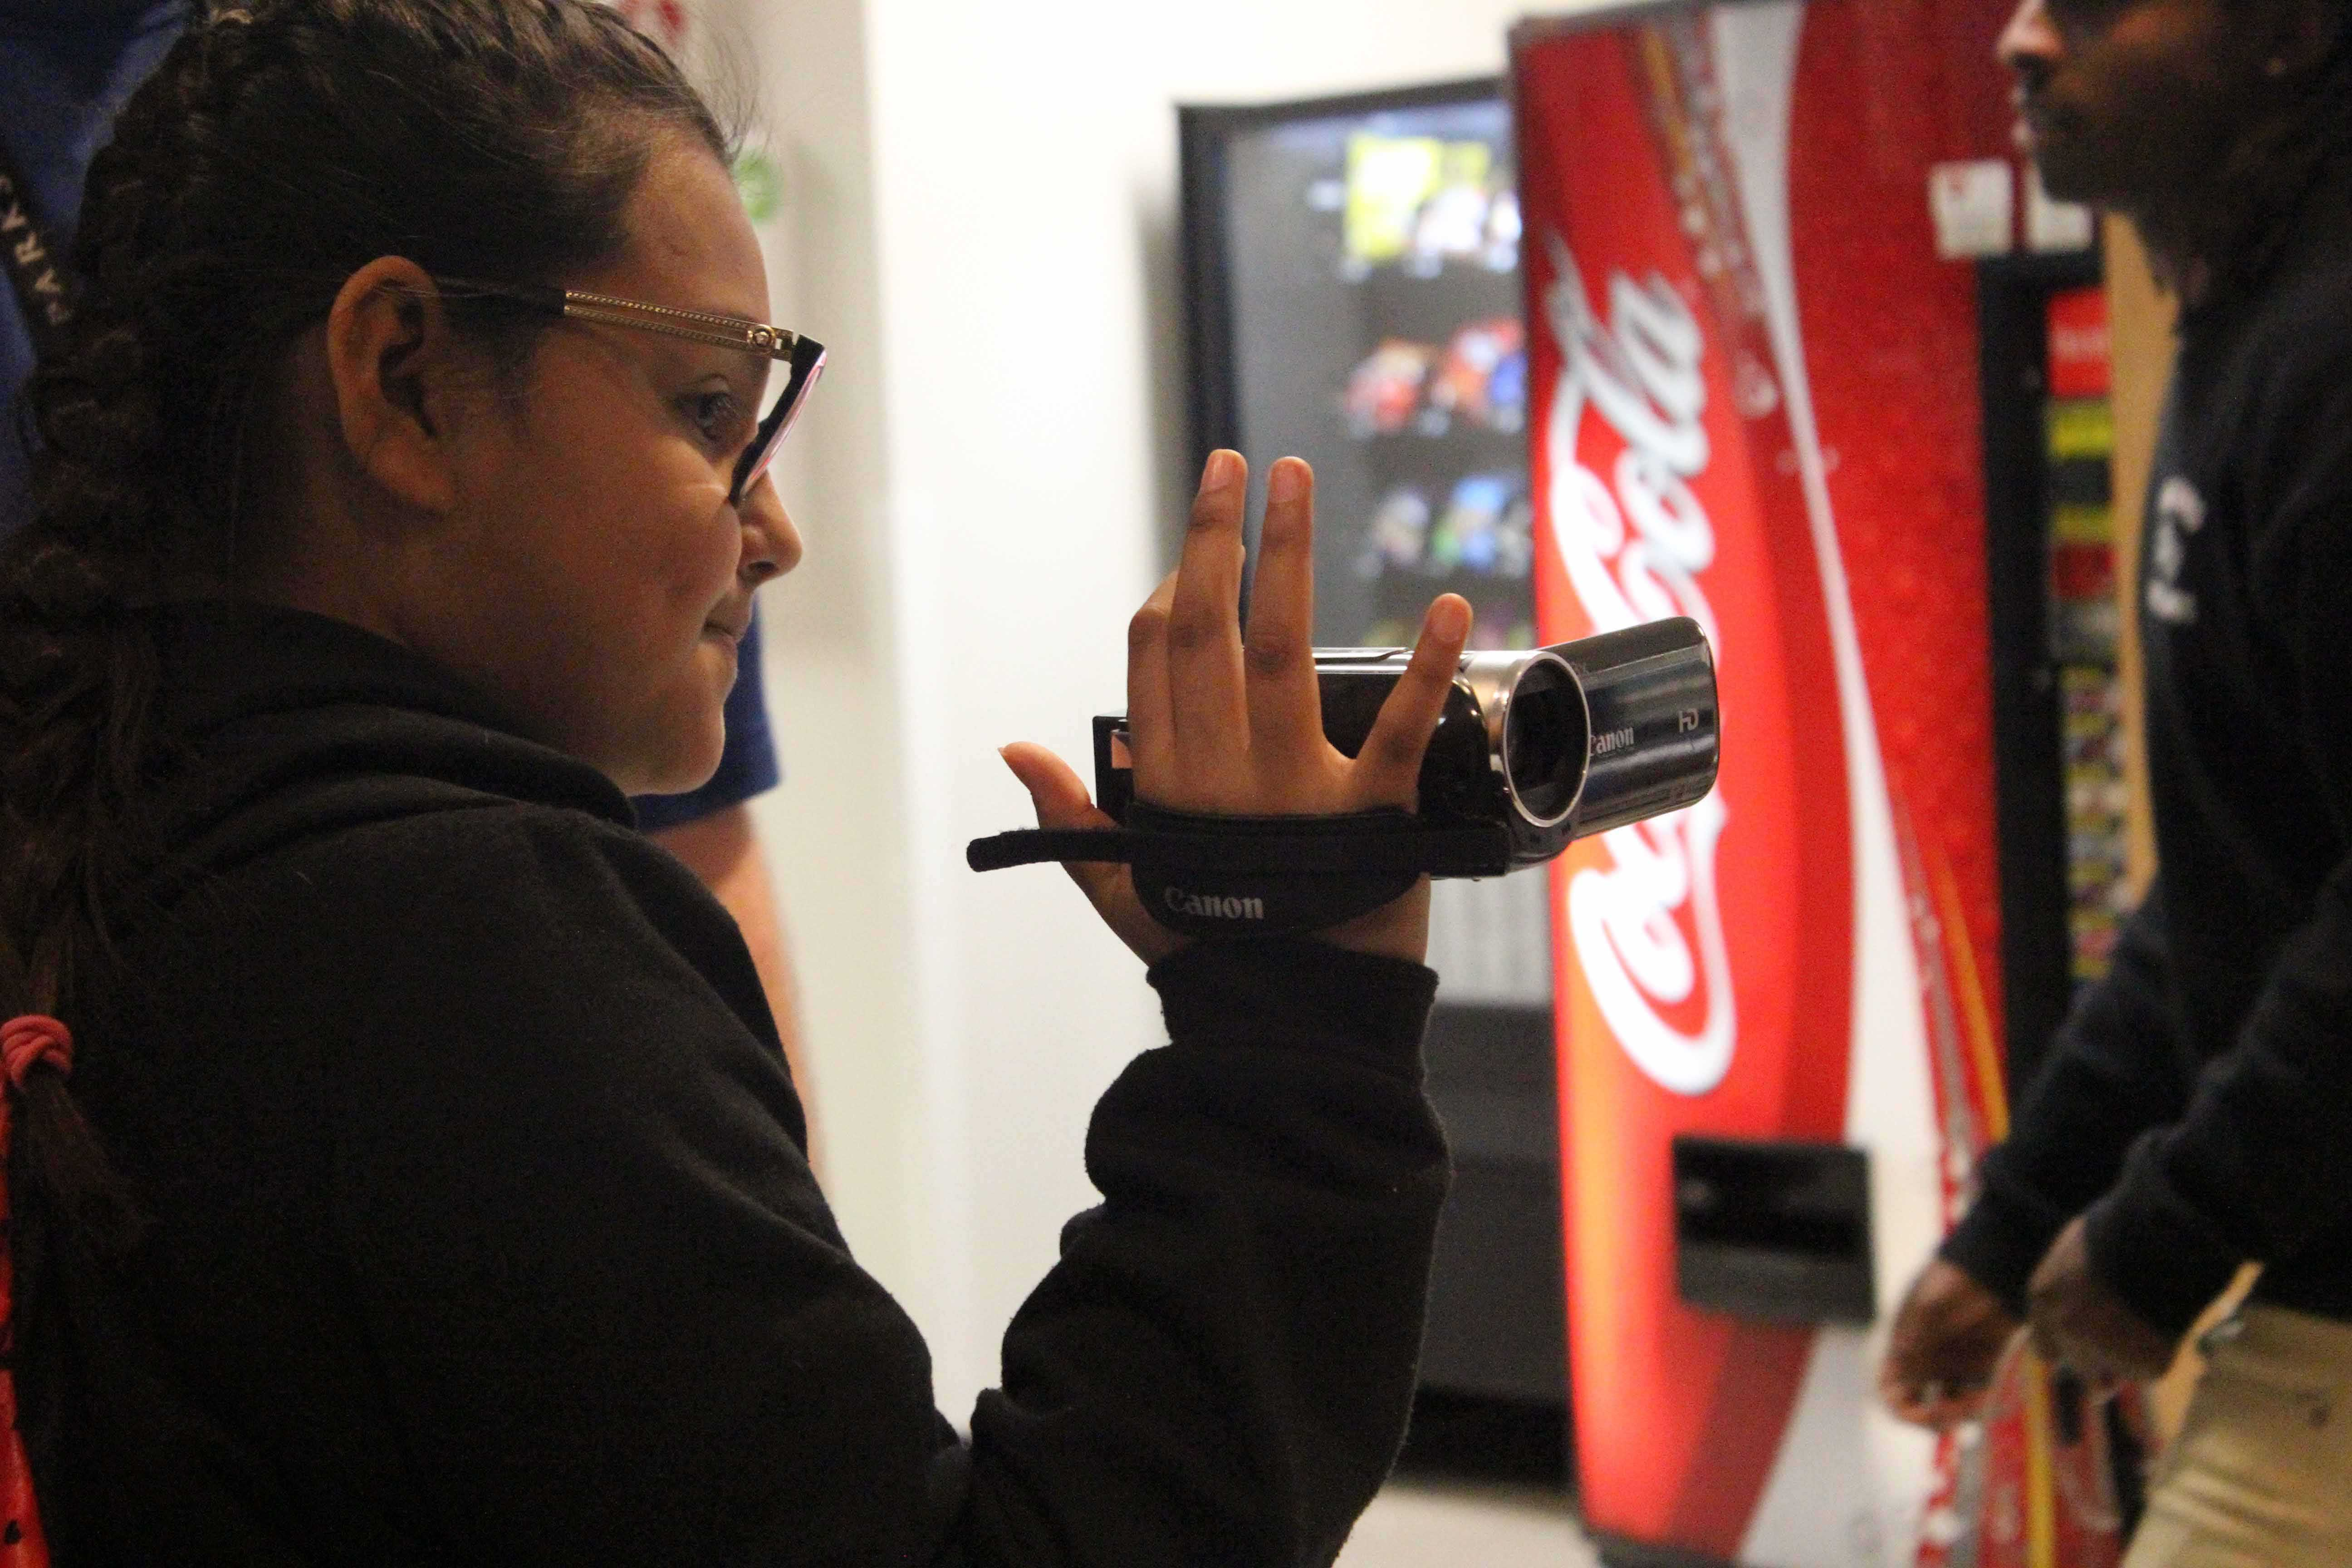 A sixth grader participates in recording and making Video Art. TCTA located in Dittmar Recreation Center helps teenagers expand their creativity.